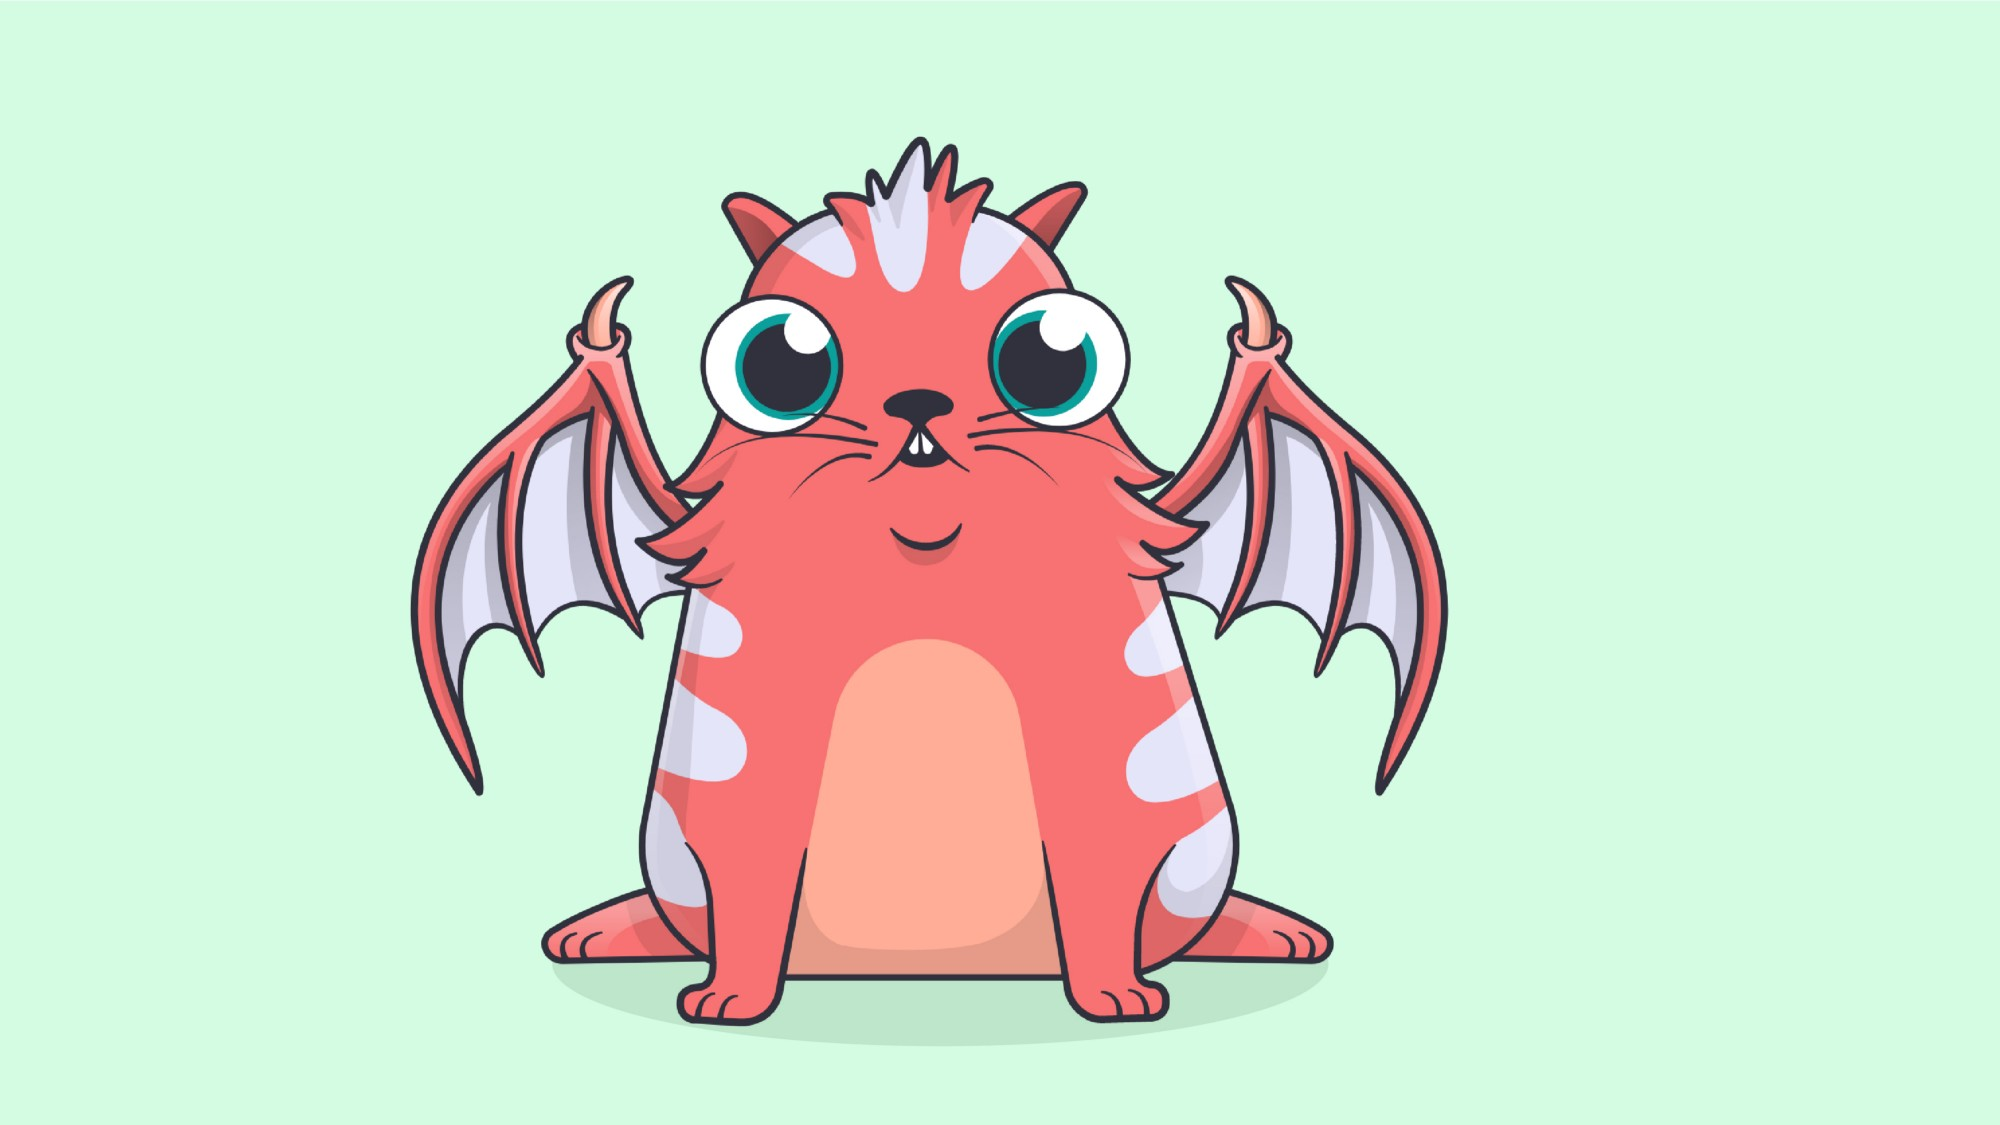 Cartoon CryptoKitty with daemonwings.